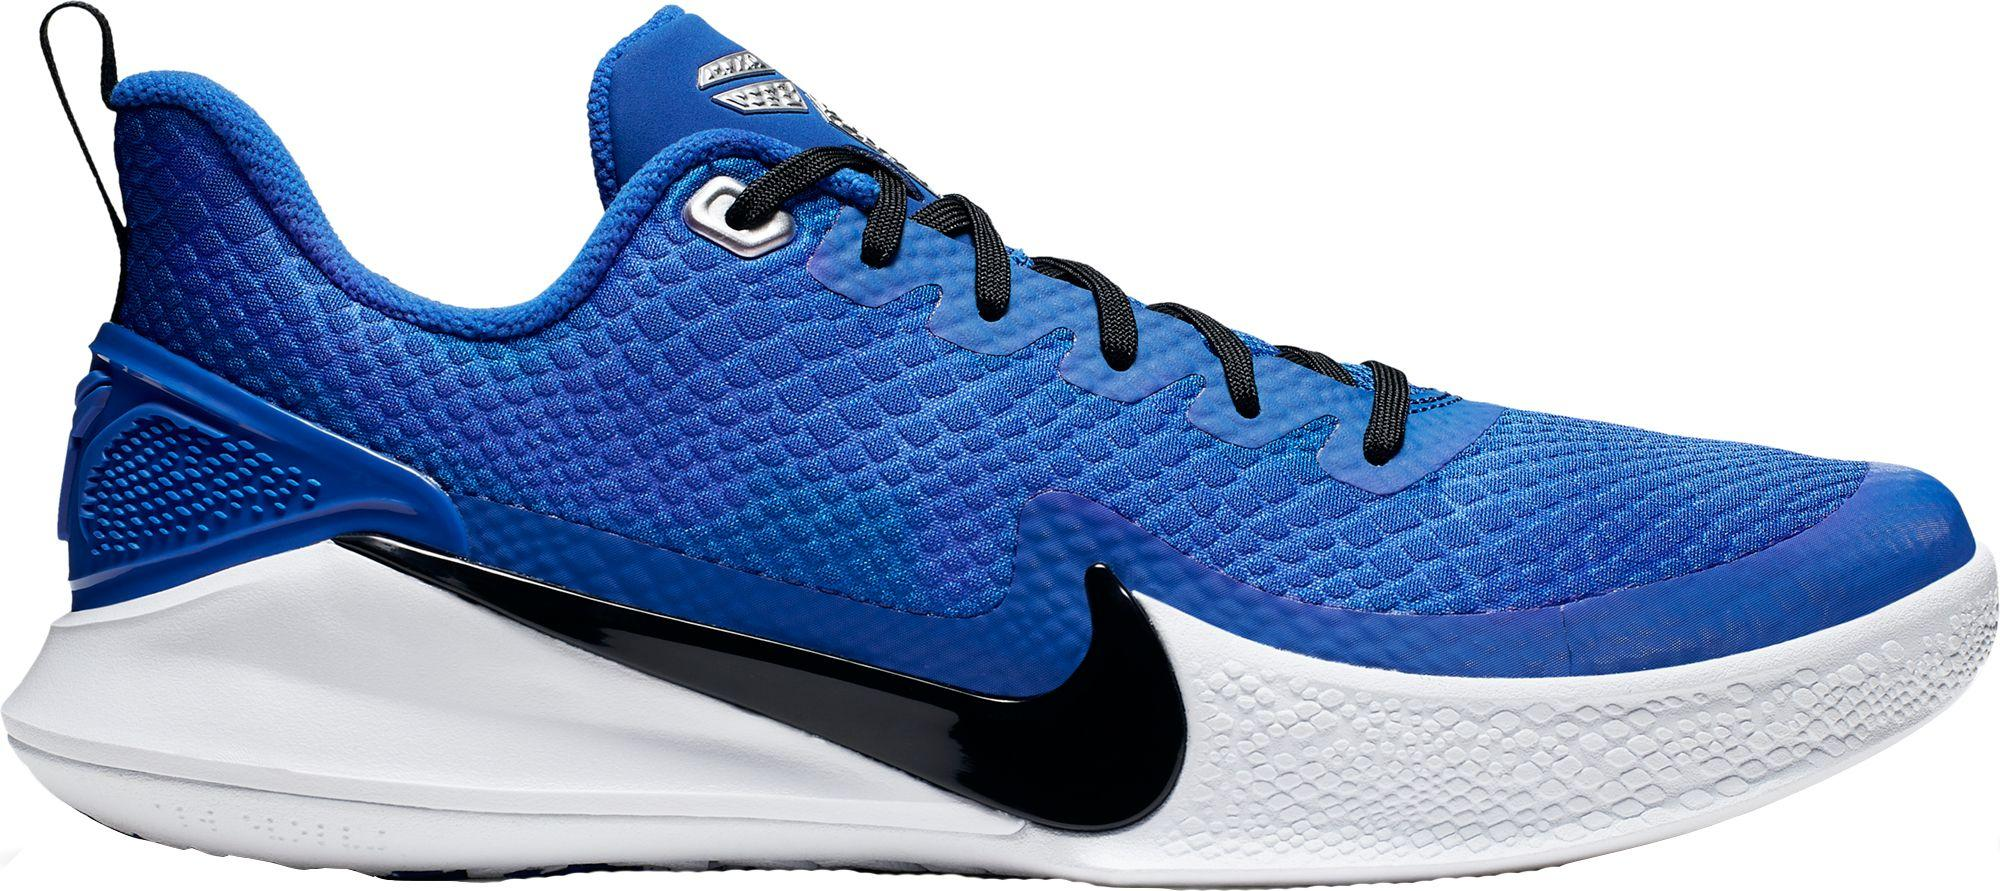 Nike Mamba Focus Basketball Shoes in